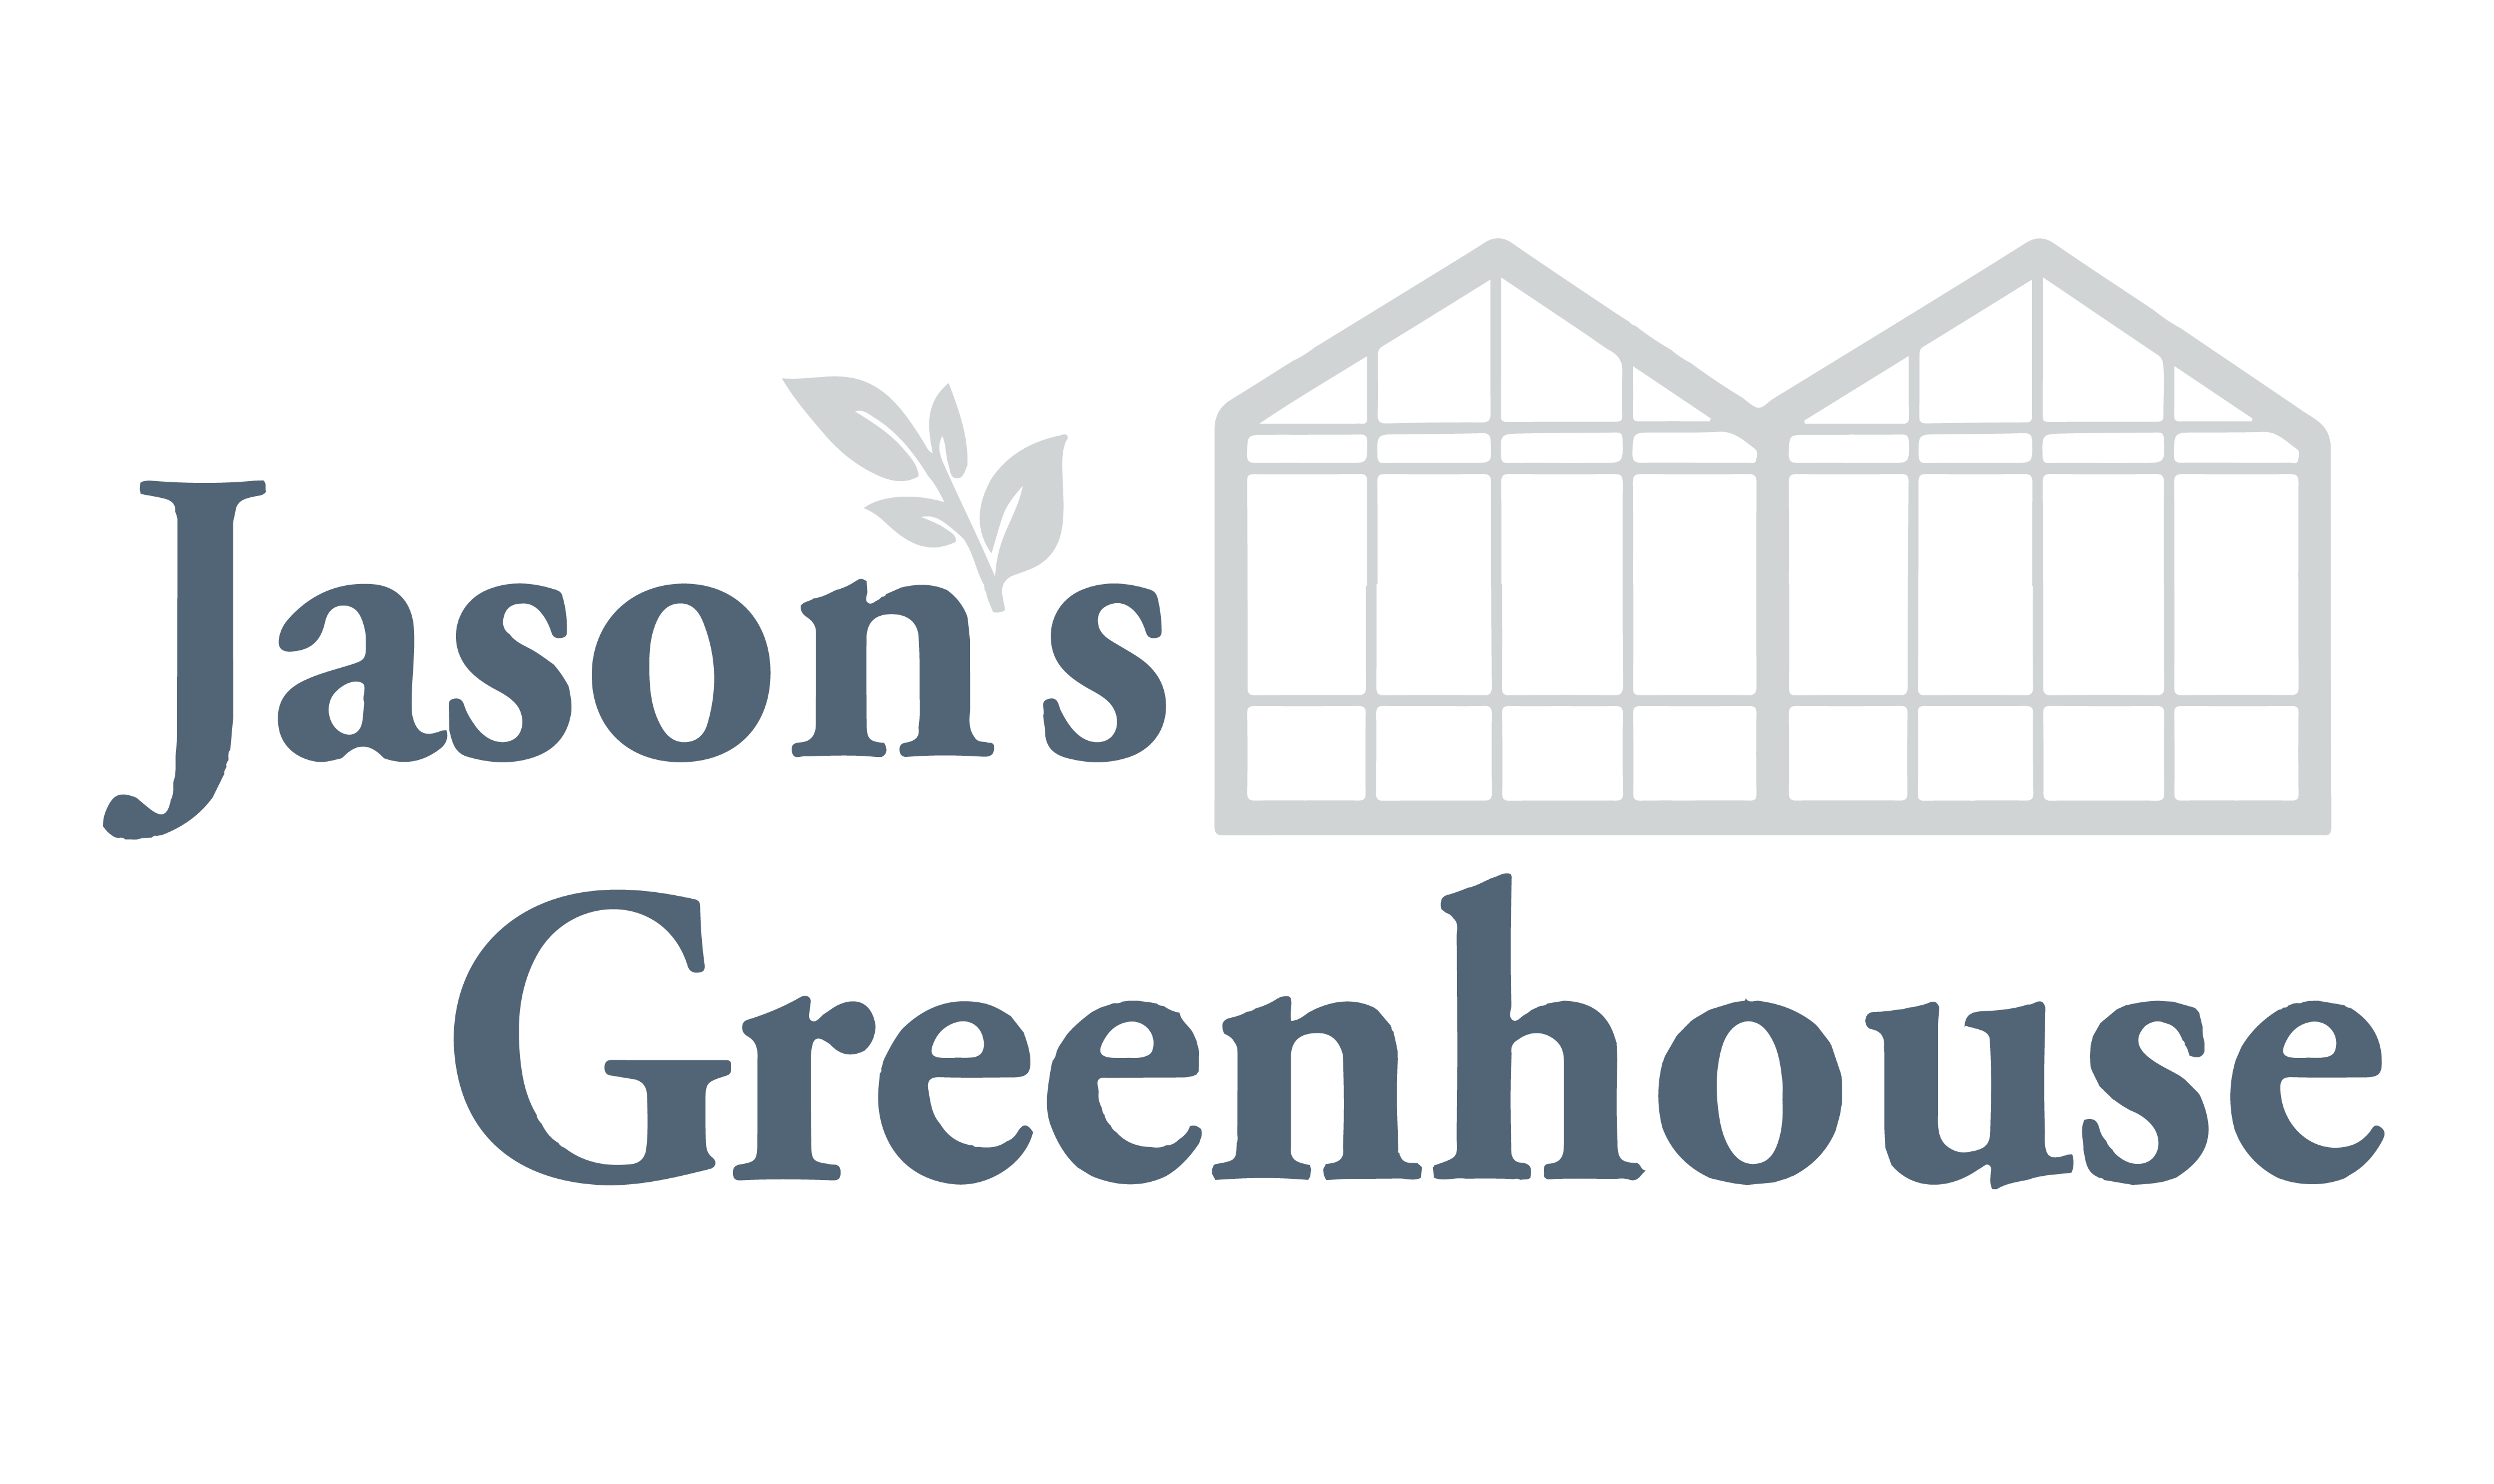 Jason's Greenhouse